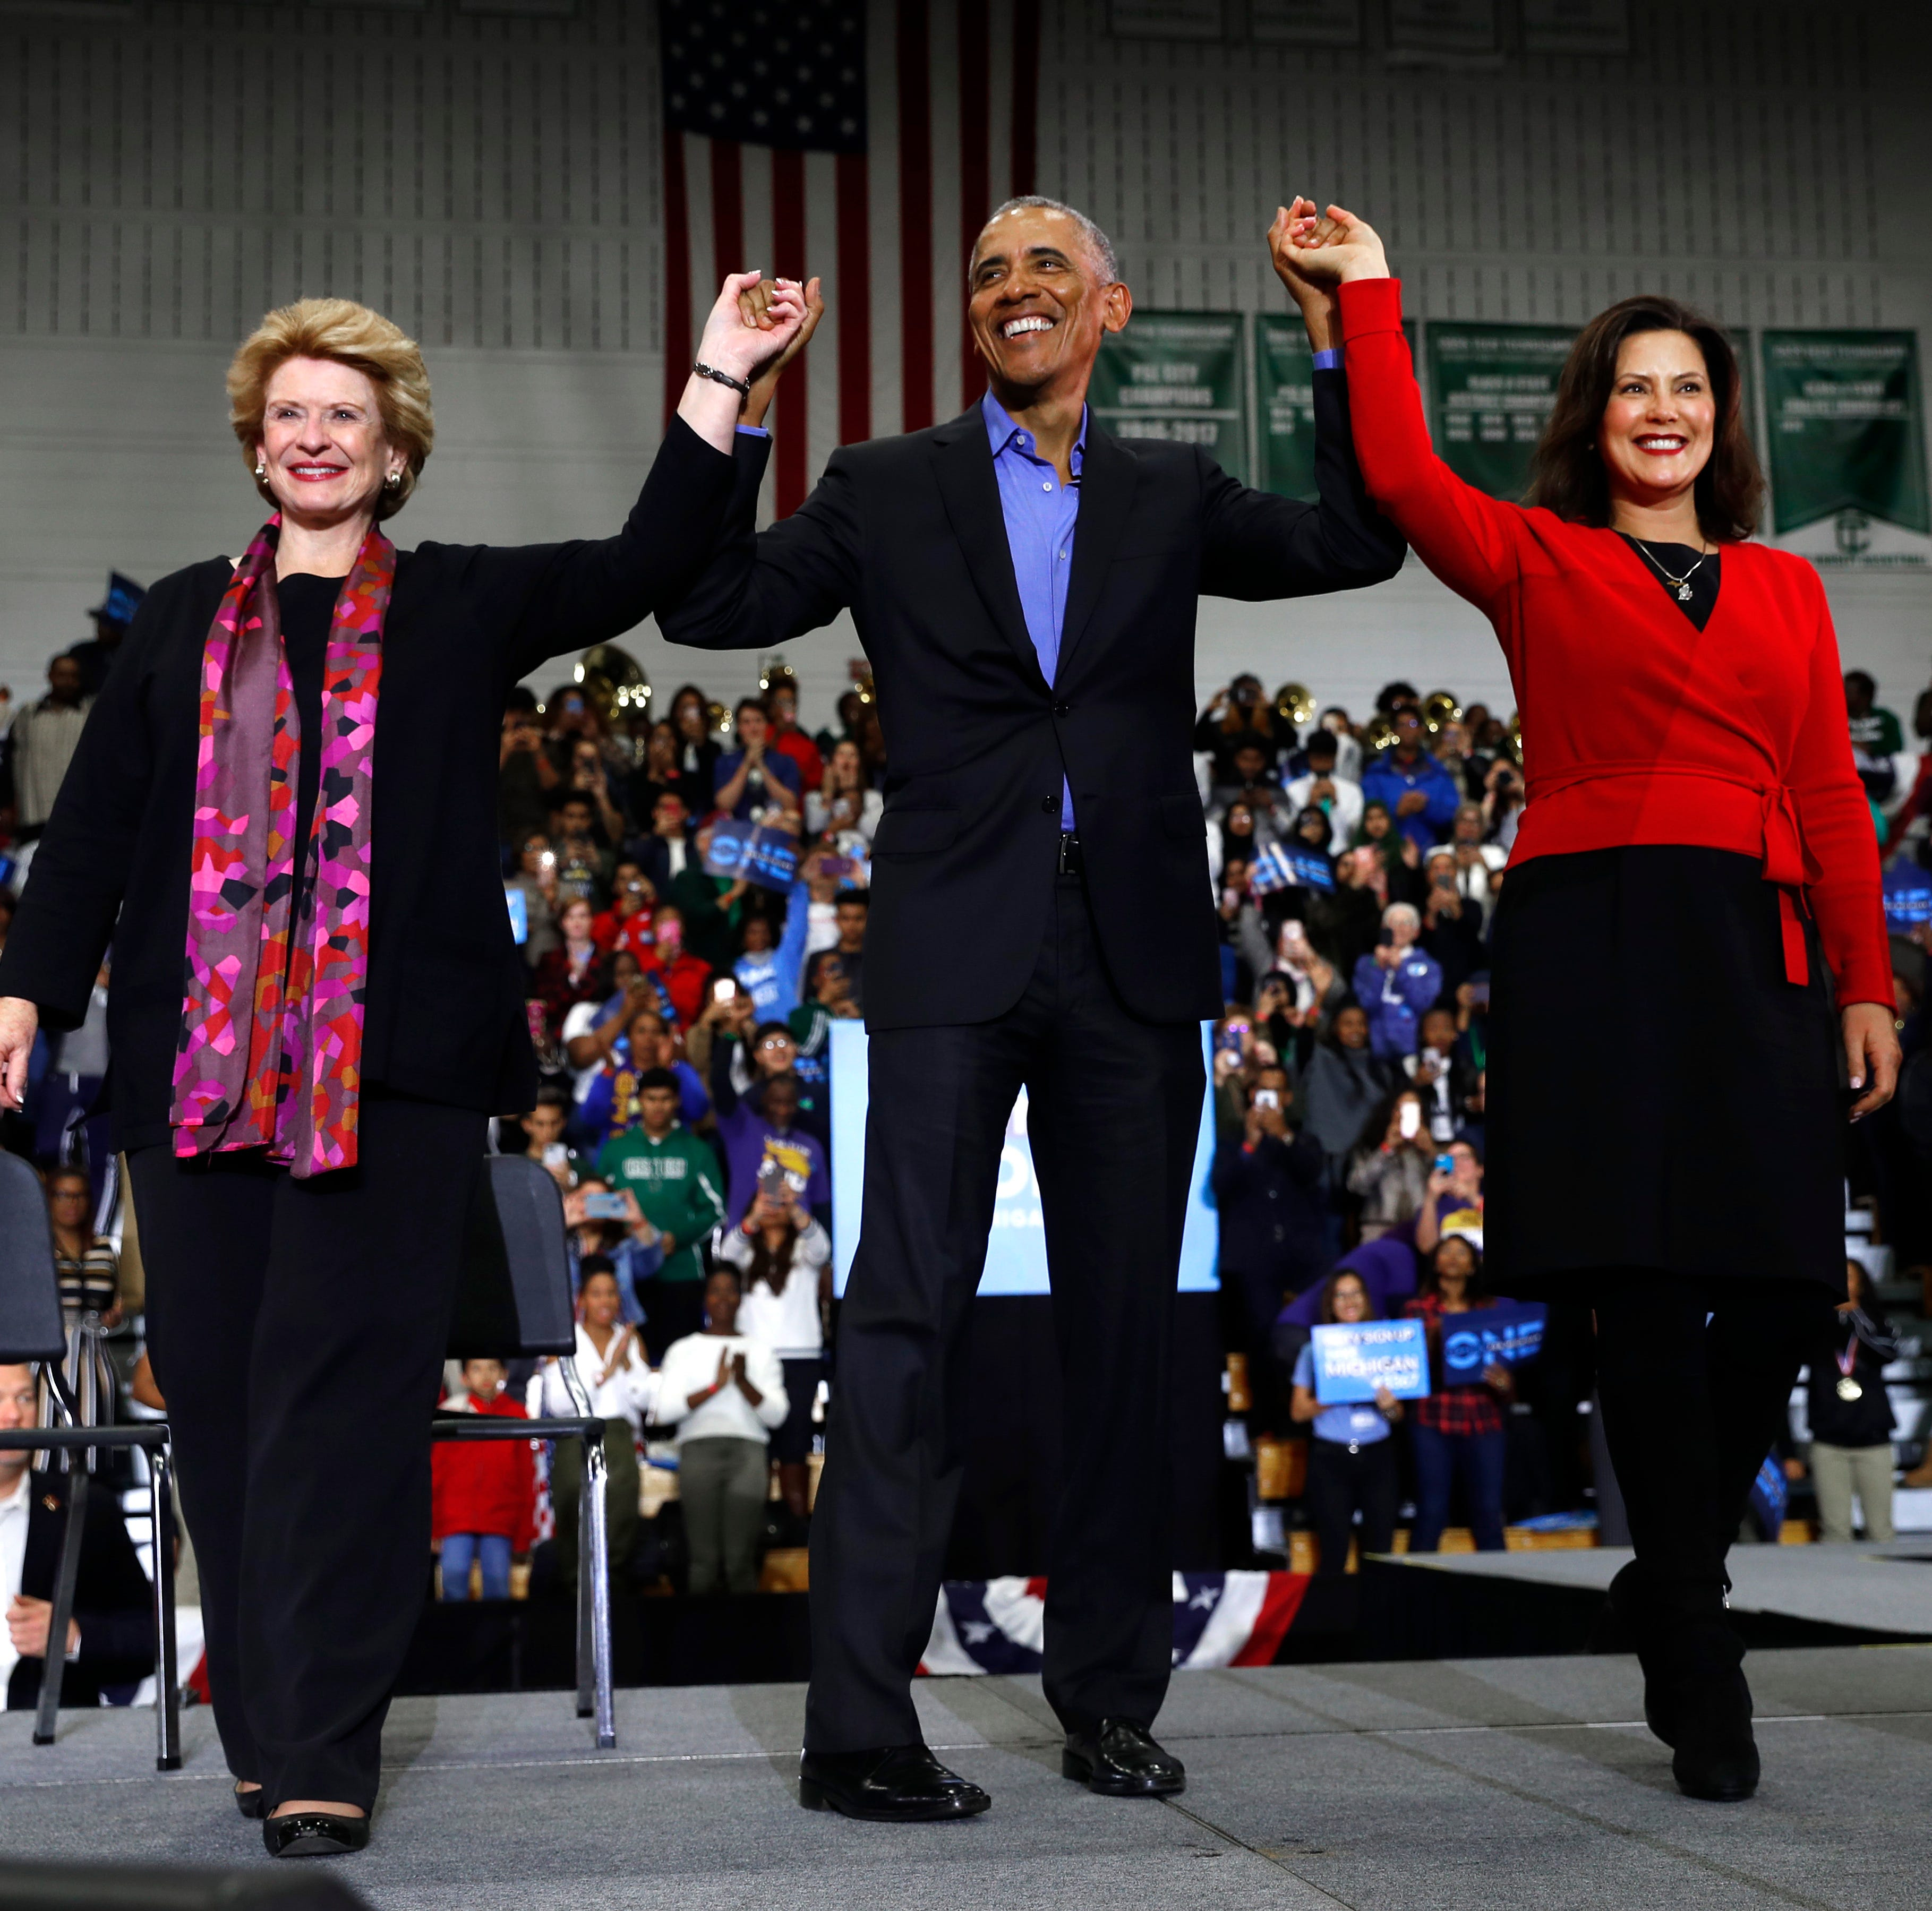 Michigan Democrats hope to build on Obama visit with new ads